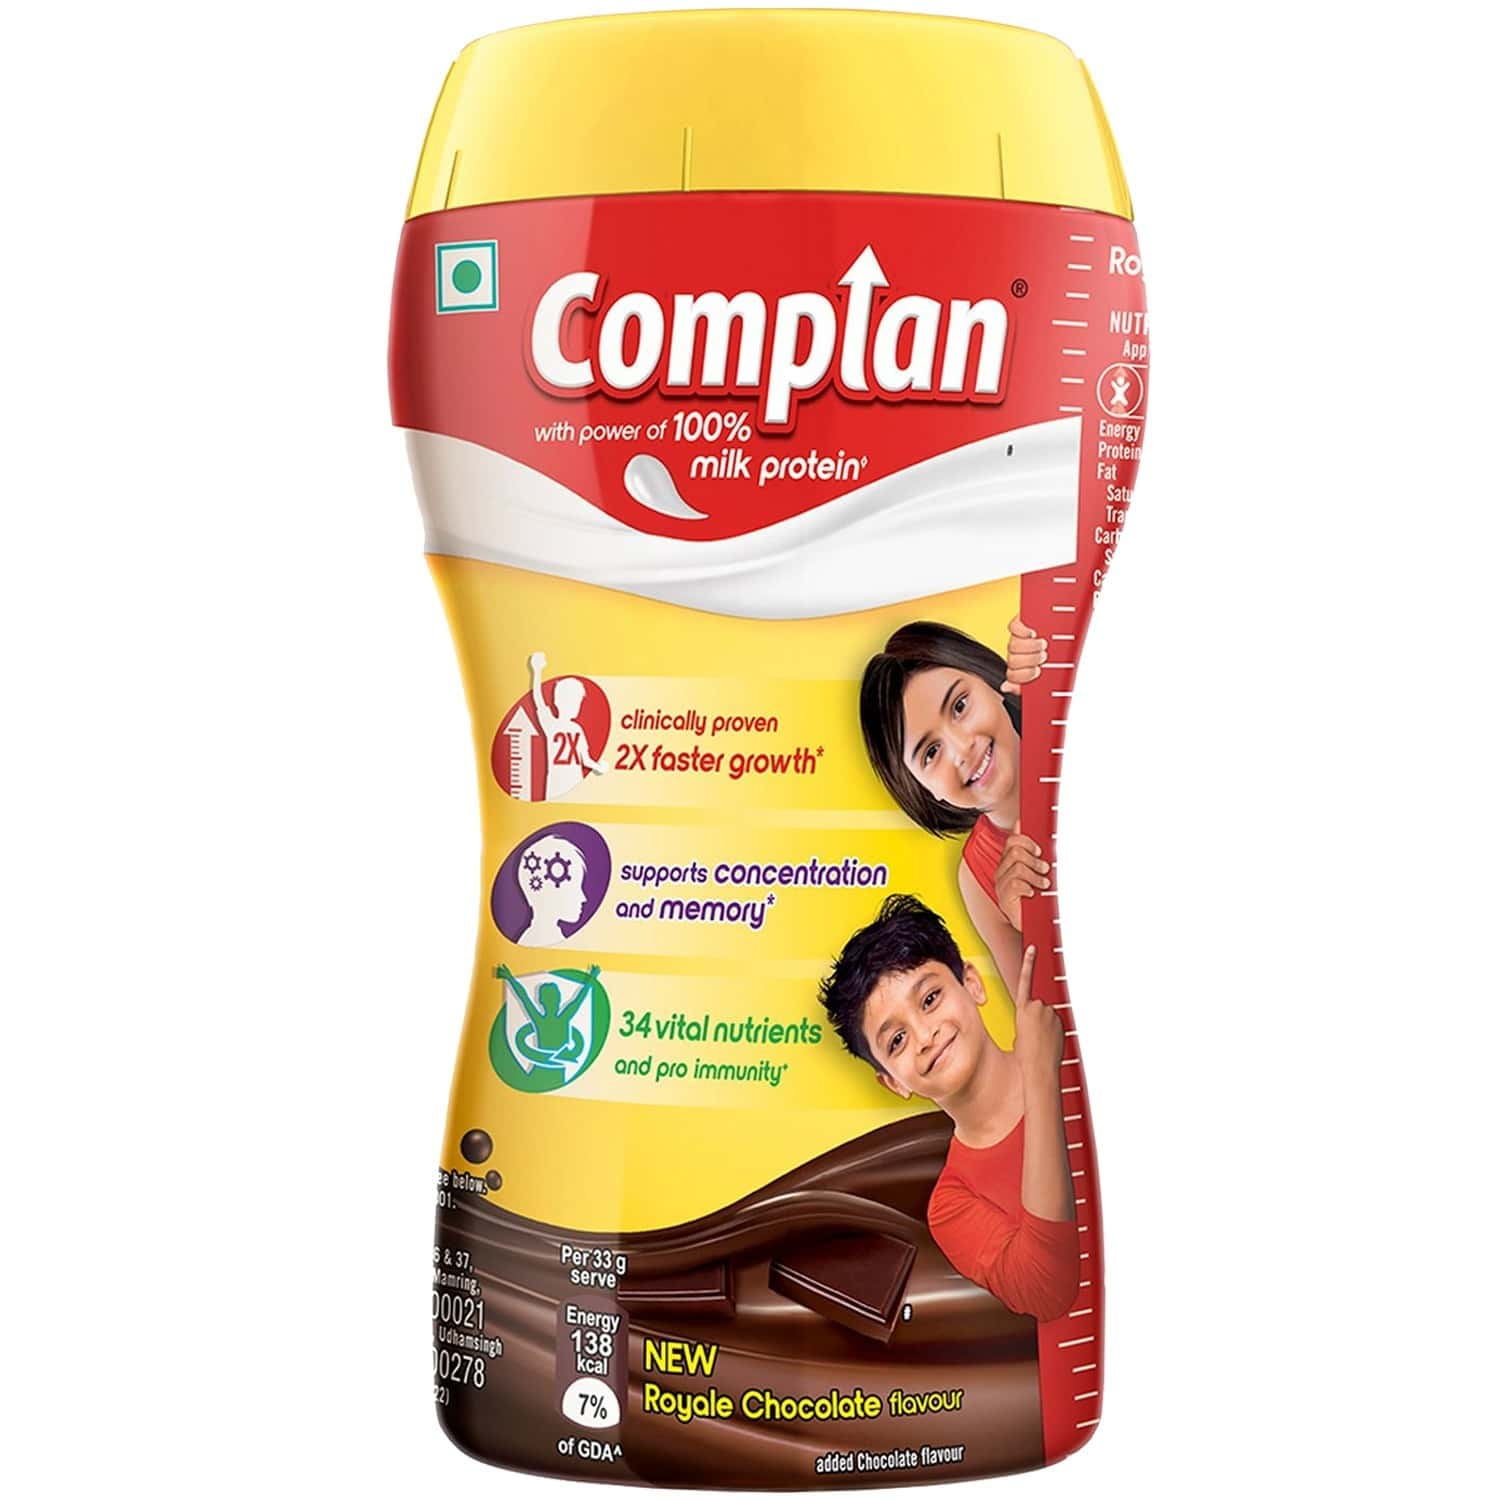 Complan Nutrition And Health Drink Royale Chocolate 200g, Jar